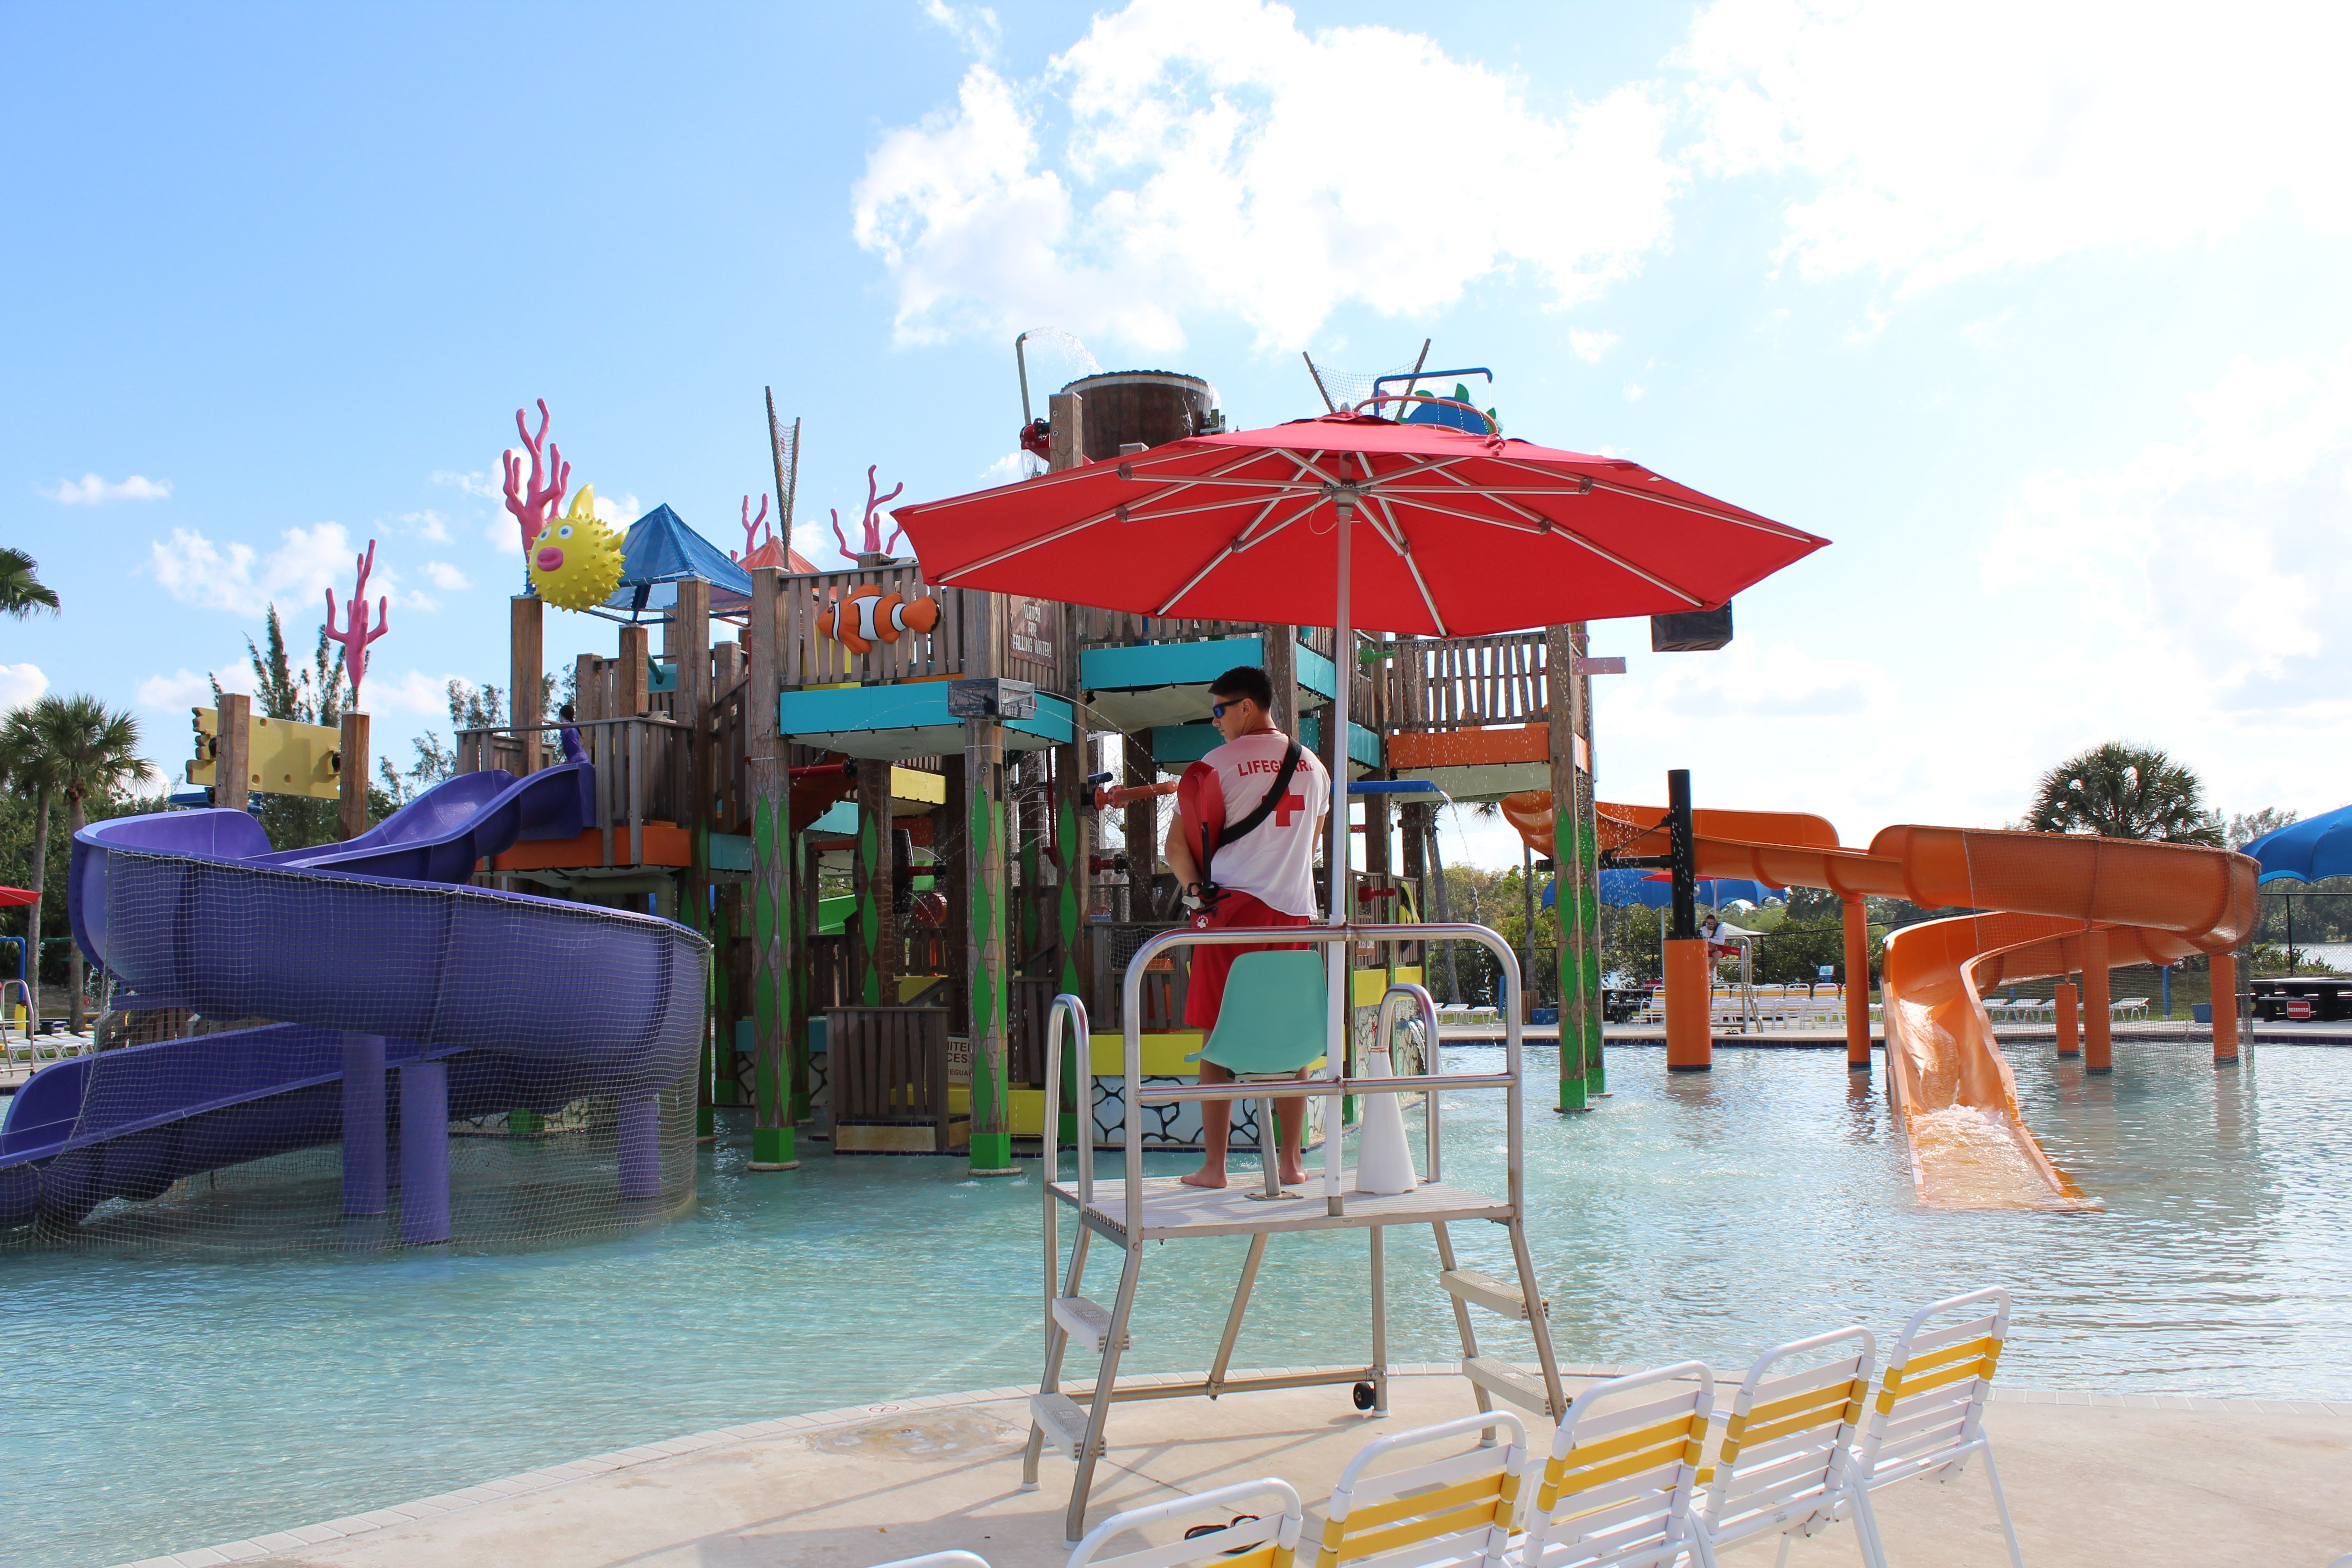 The Maintenance Mantra <br> Waterpark Safety and Upkeep Go Hand In Hand